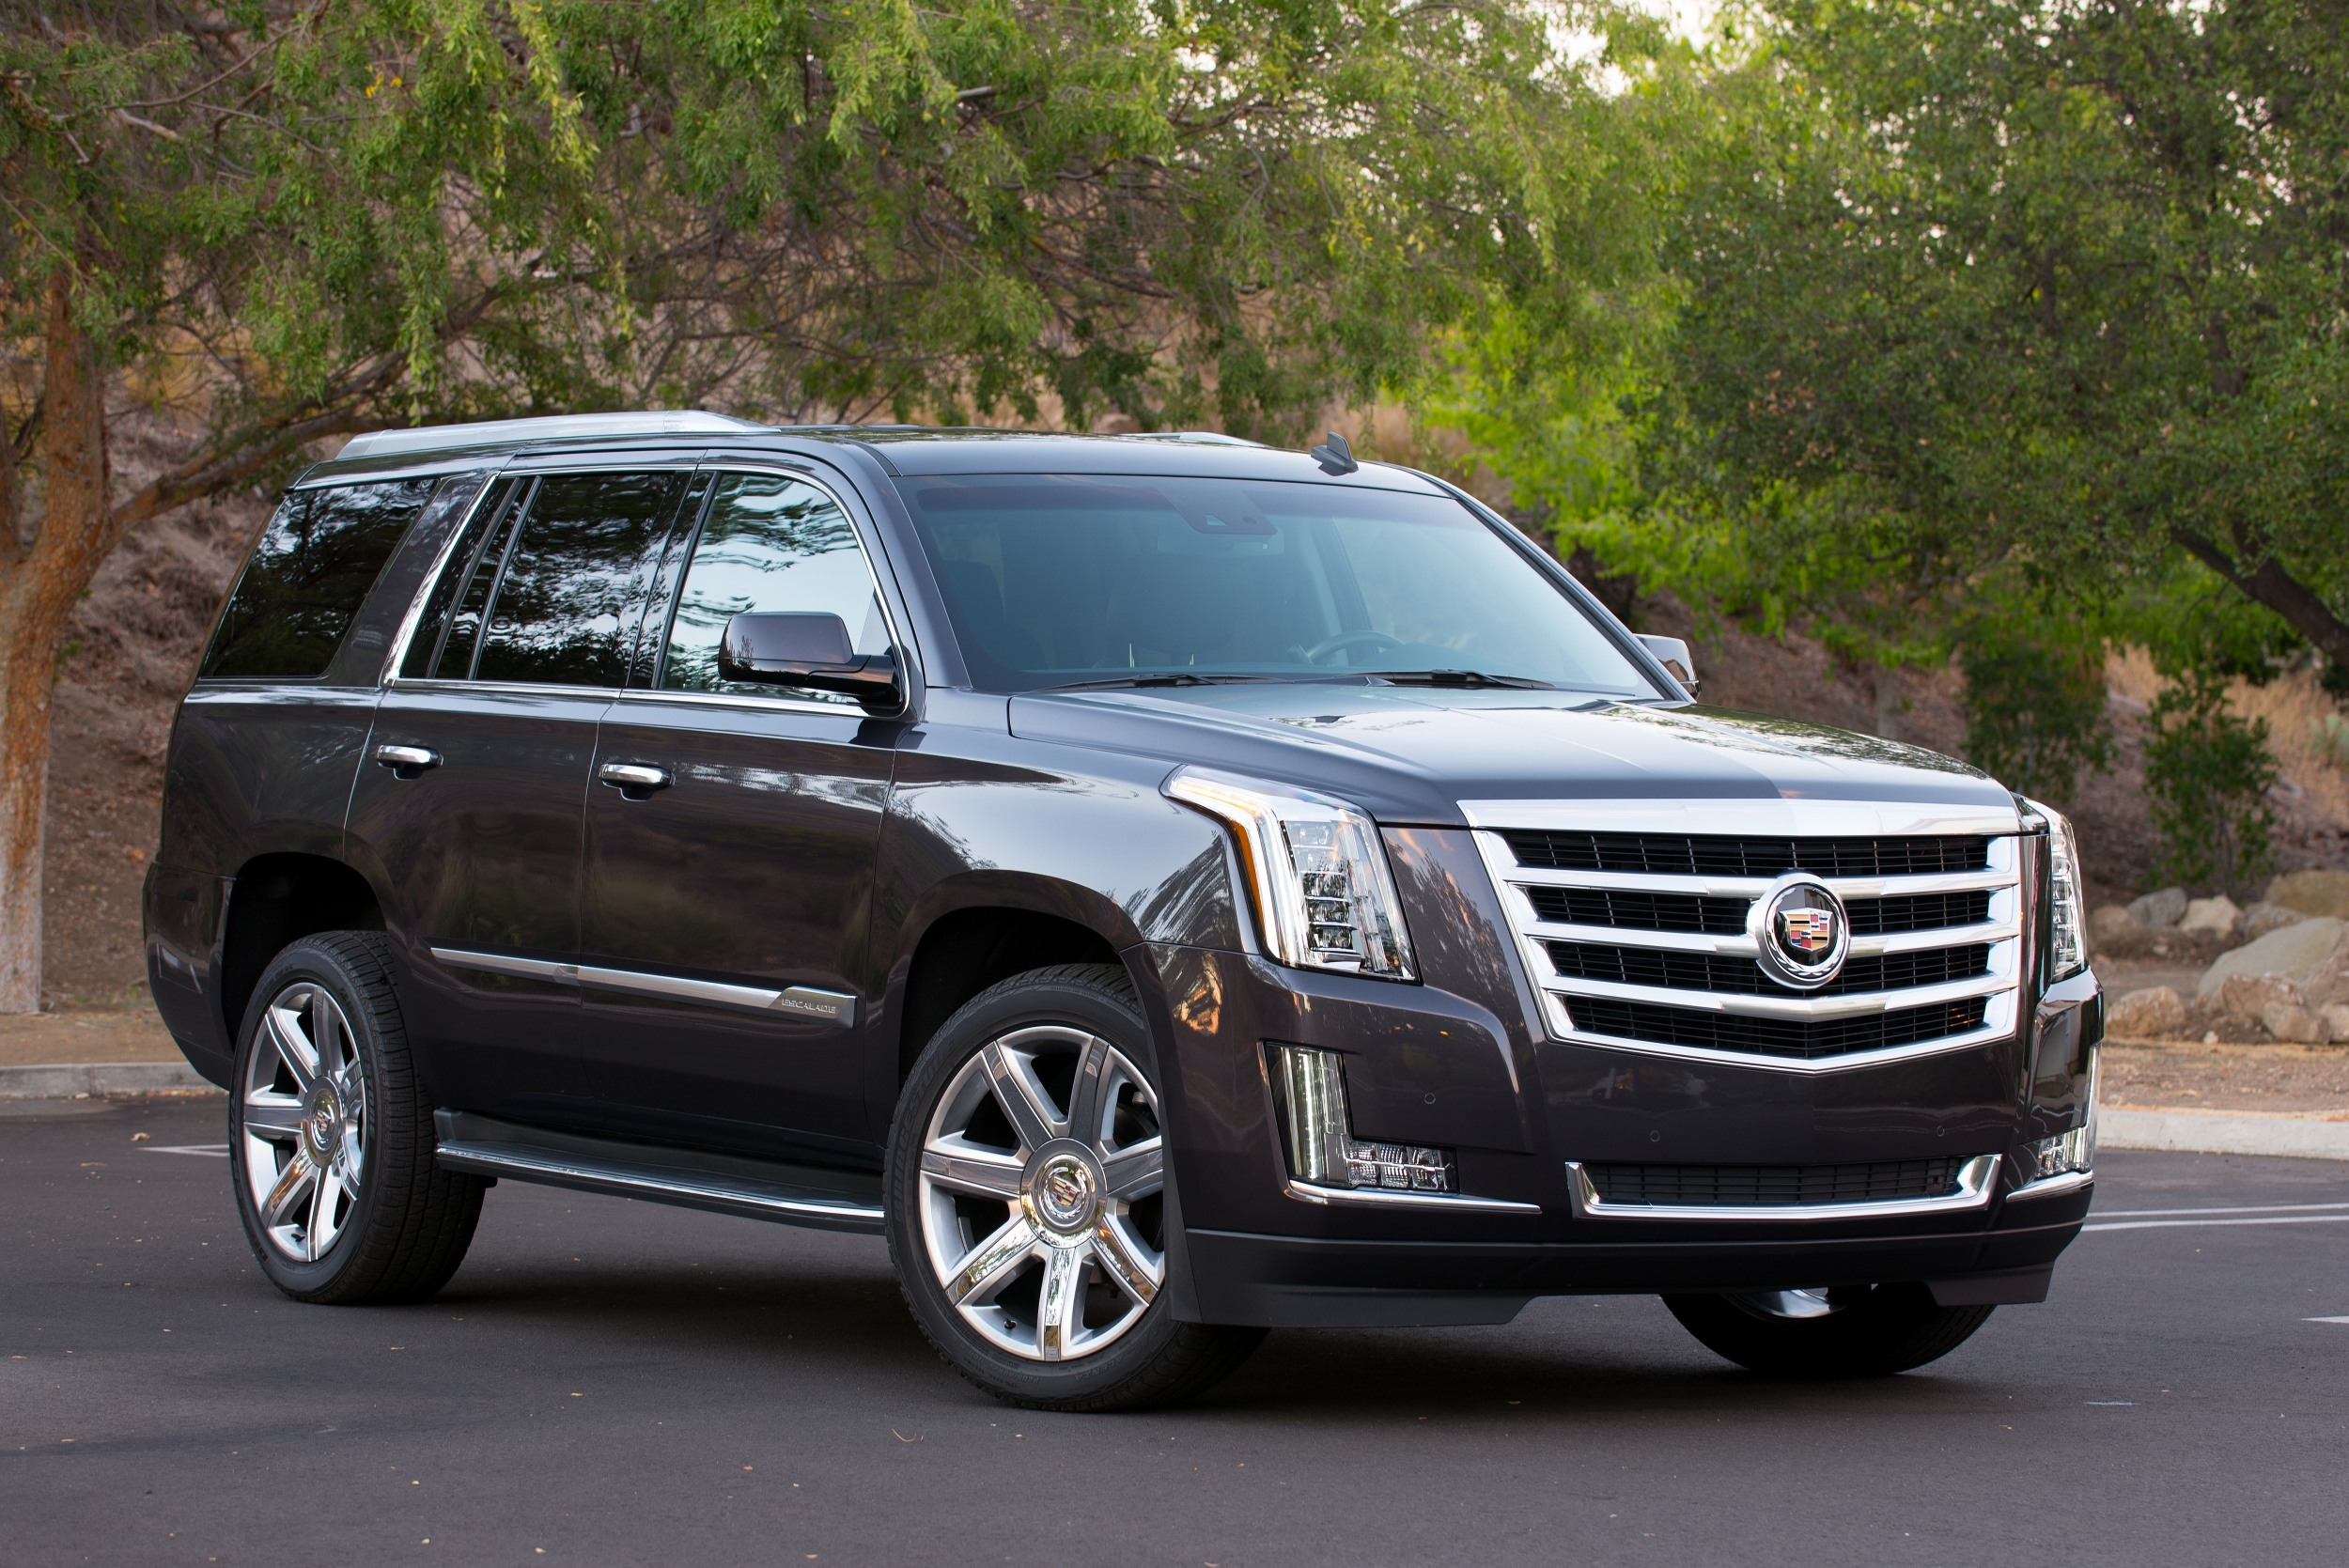 2017 cadillac escalade luxury 4wd for sale cargurus. Black Bedroom Furniture Sets. Home Design Ideas